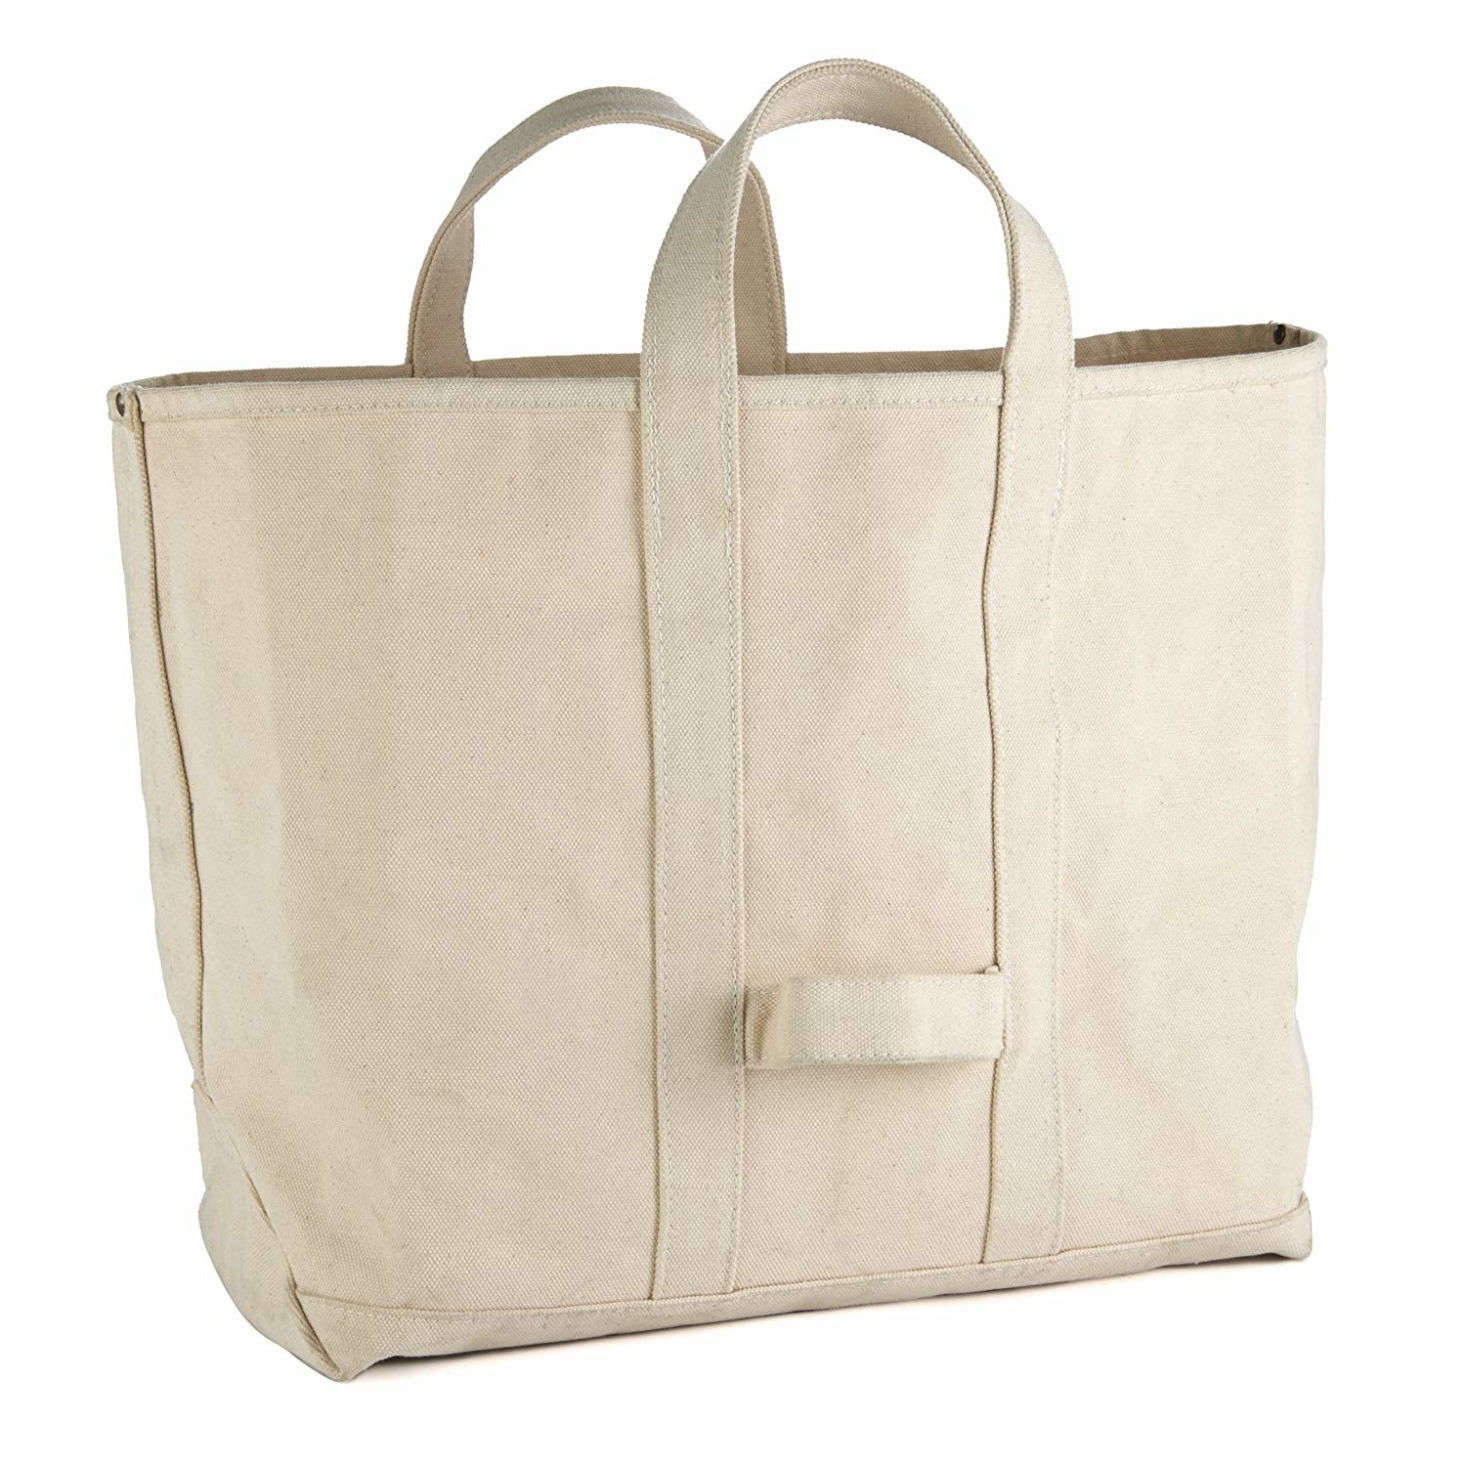 We found this basic, rugged Heavy Duty Canvas Tote Coal Bag on Amazon for just $49.99.